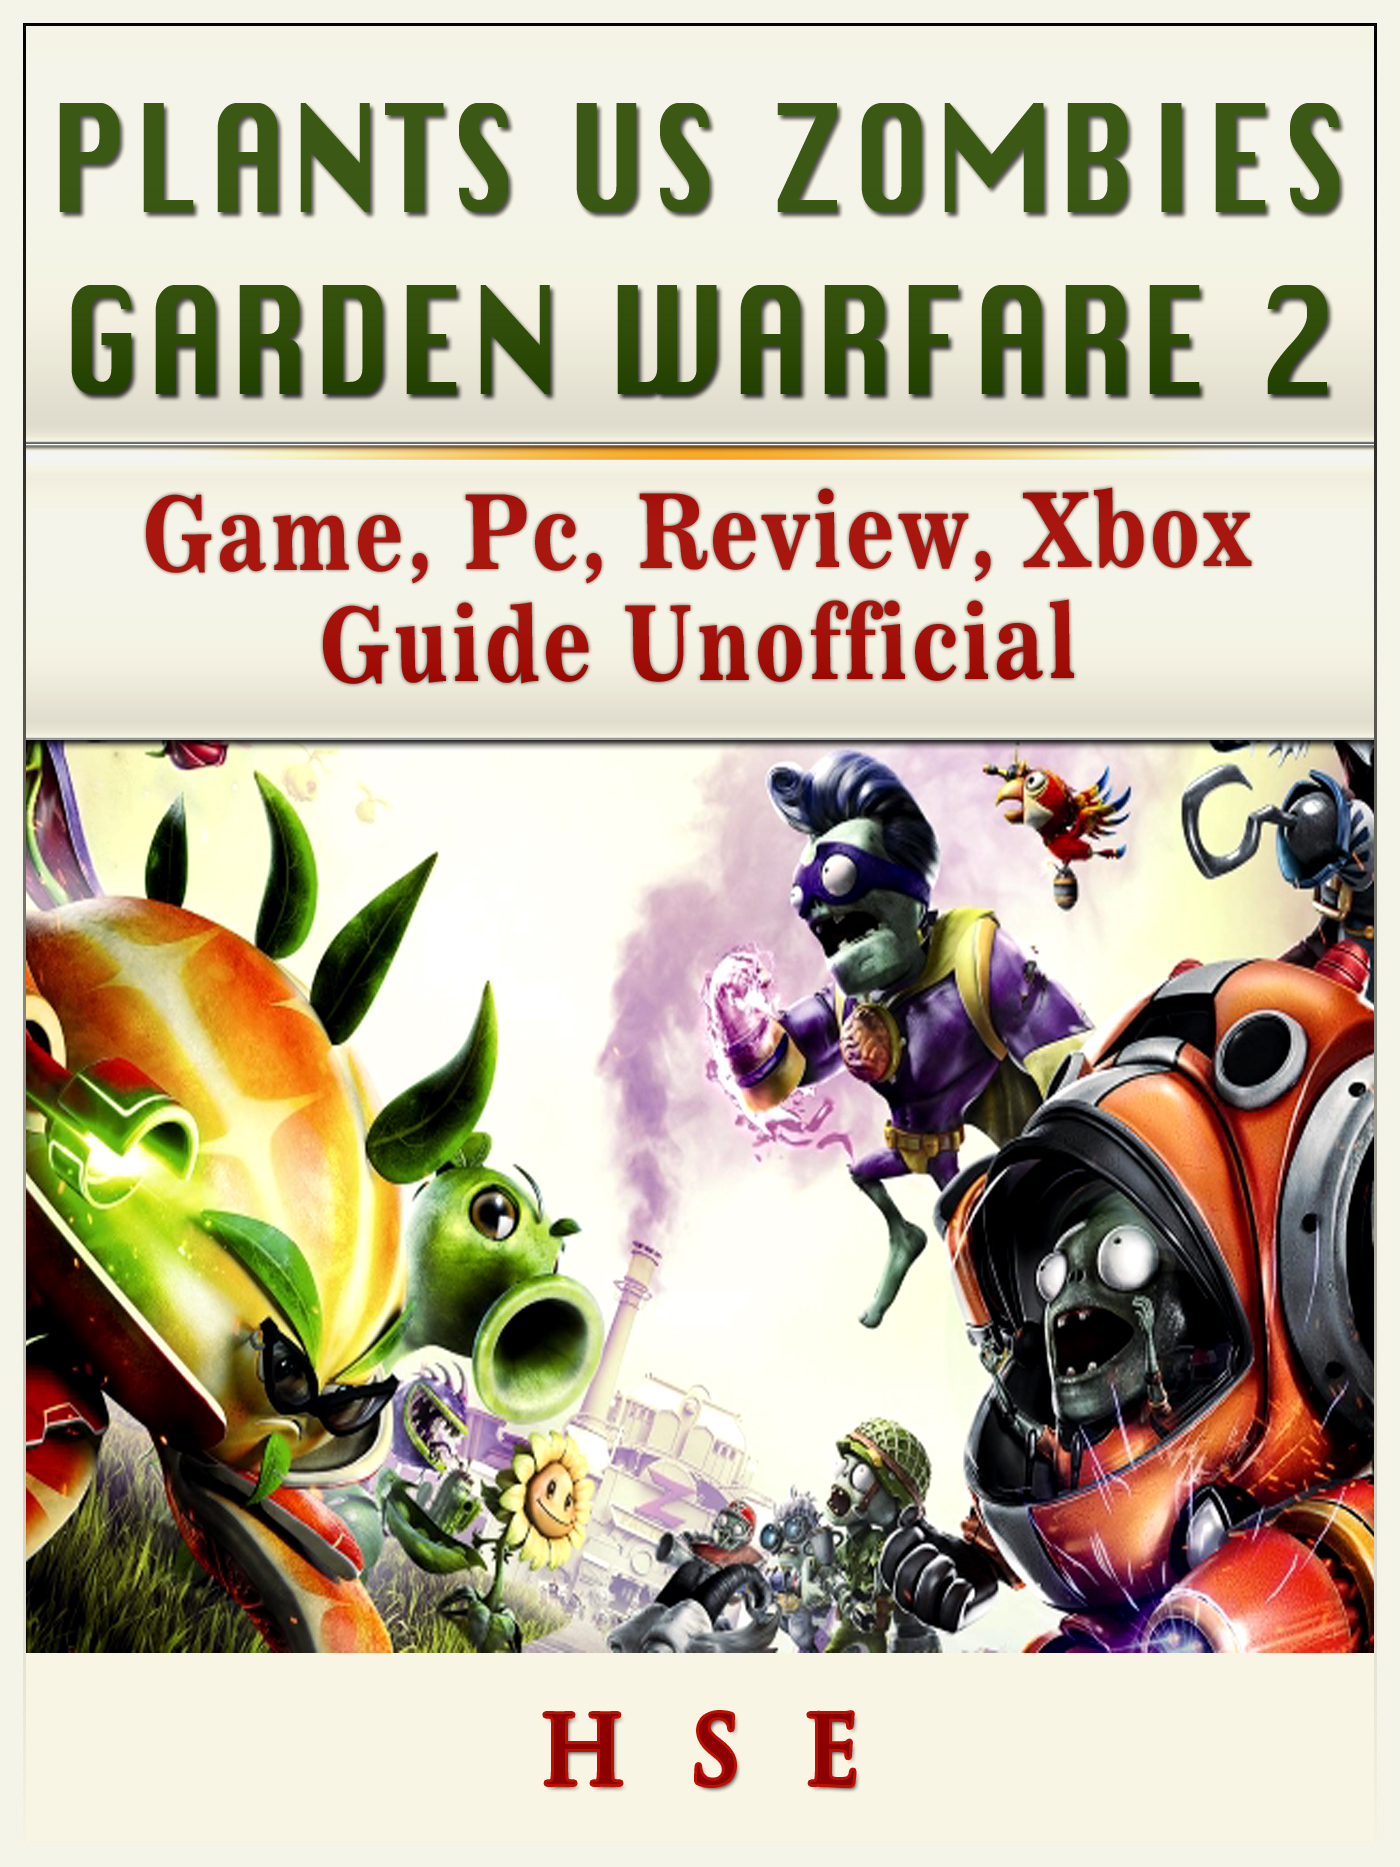 Plants Vs Zombies Garden Warfare 2 Game, PC, Review, Xbox Guide Unofficial By Hse Games